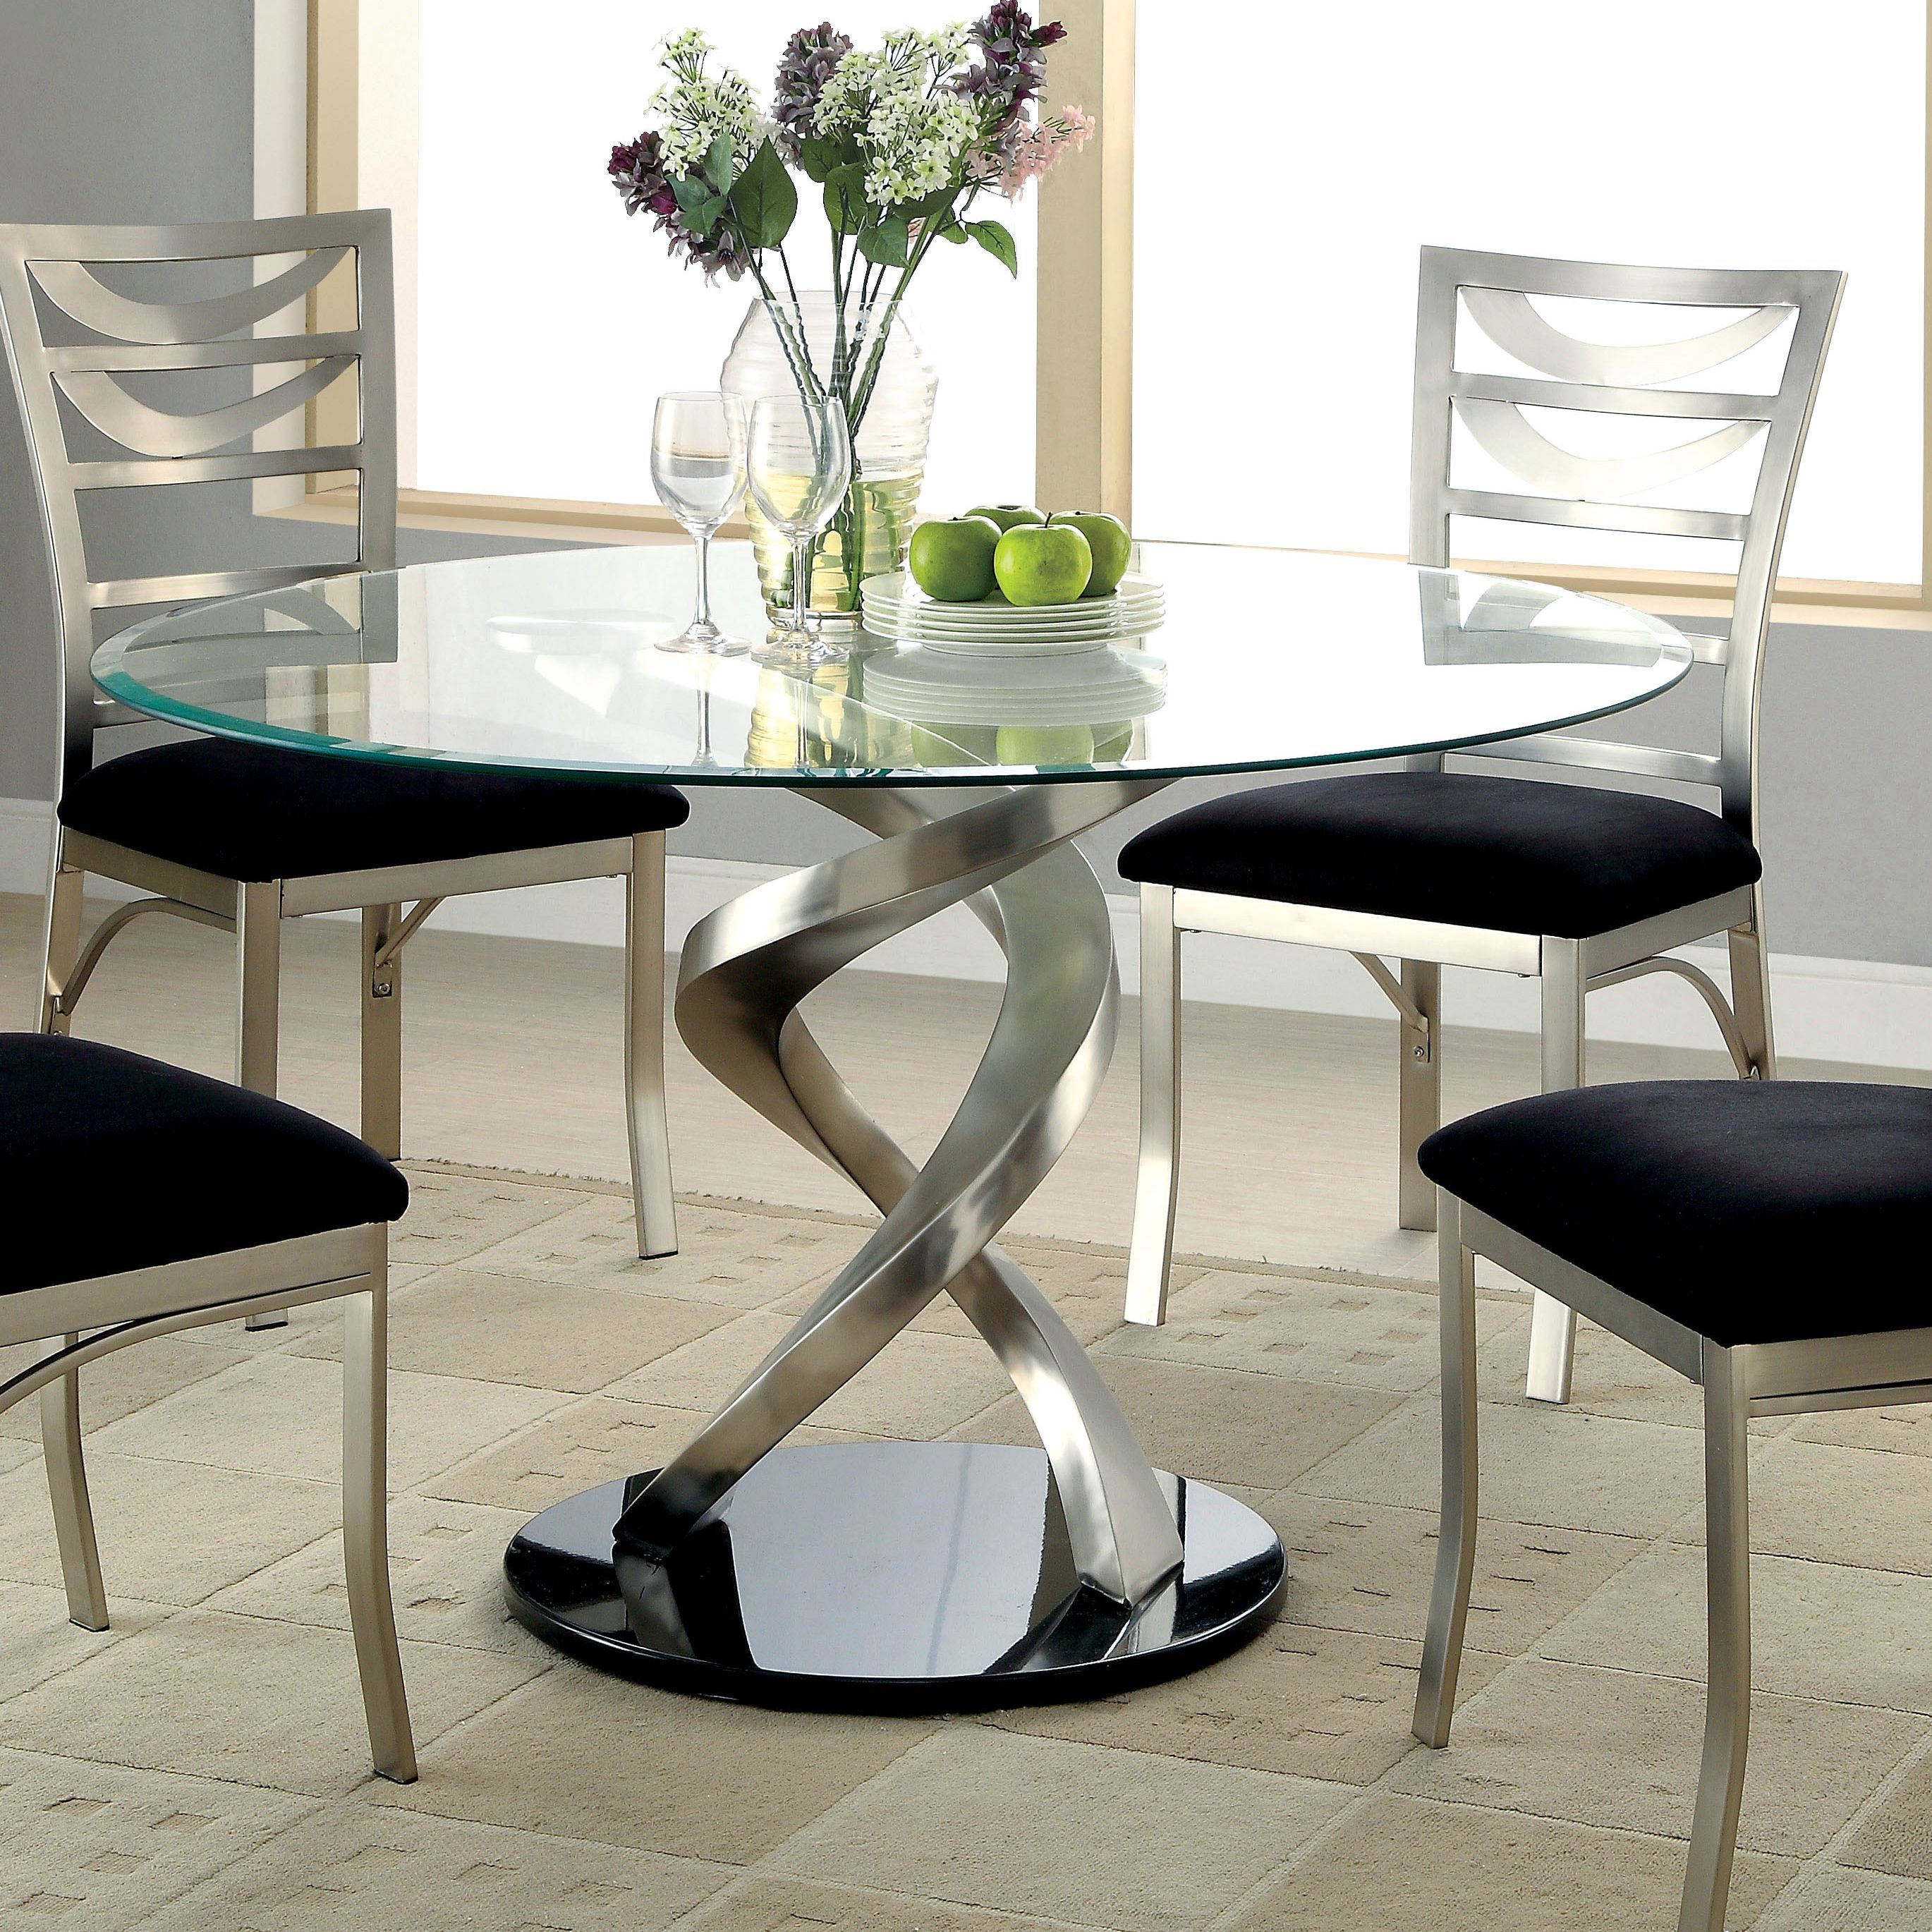 Bring modern sculpture designs to the dining room with for Round glass dining table set